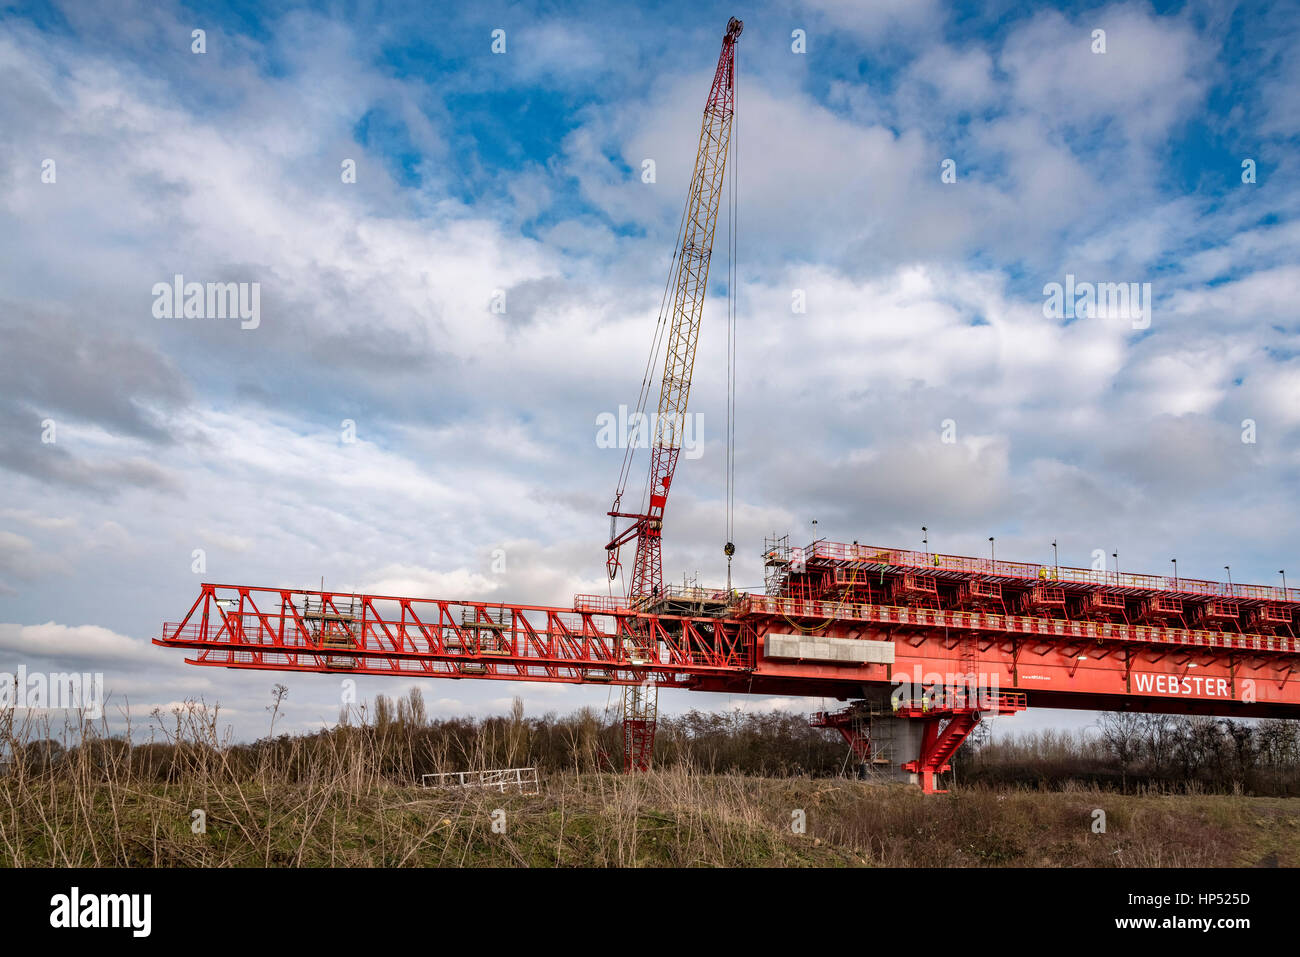 Runcorn.Cheshire. North West England. Friday 17th February 2017. The new Gateway bridge over the river Mersey takes - Stock Image